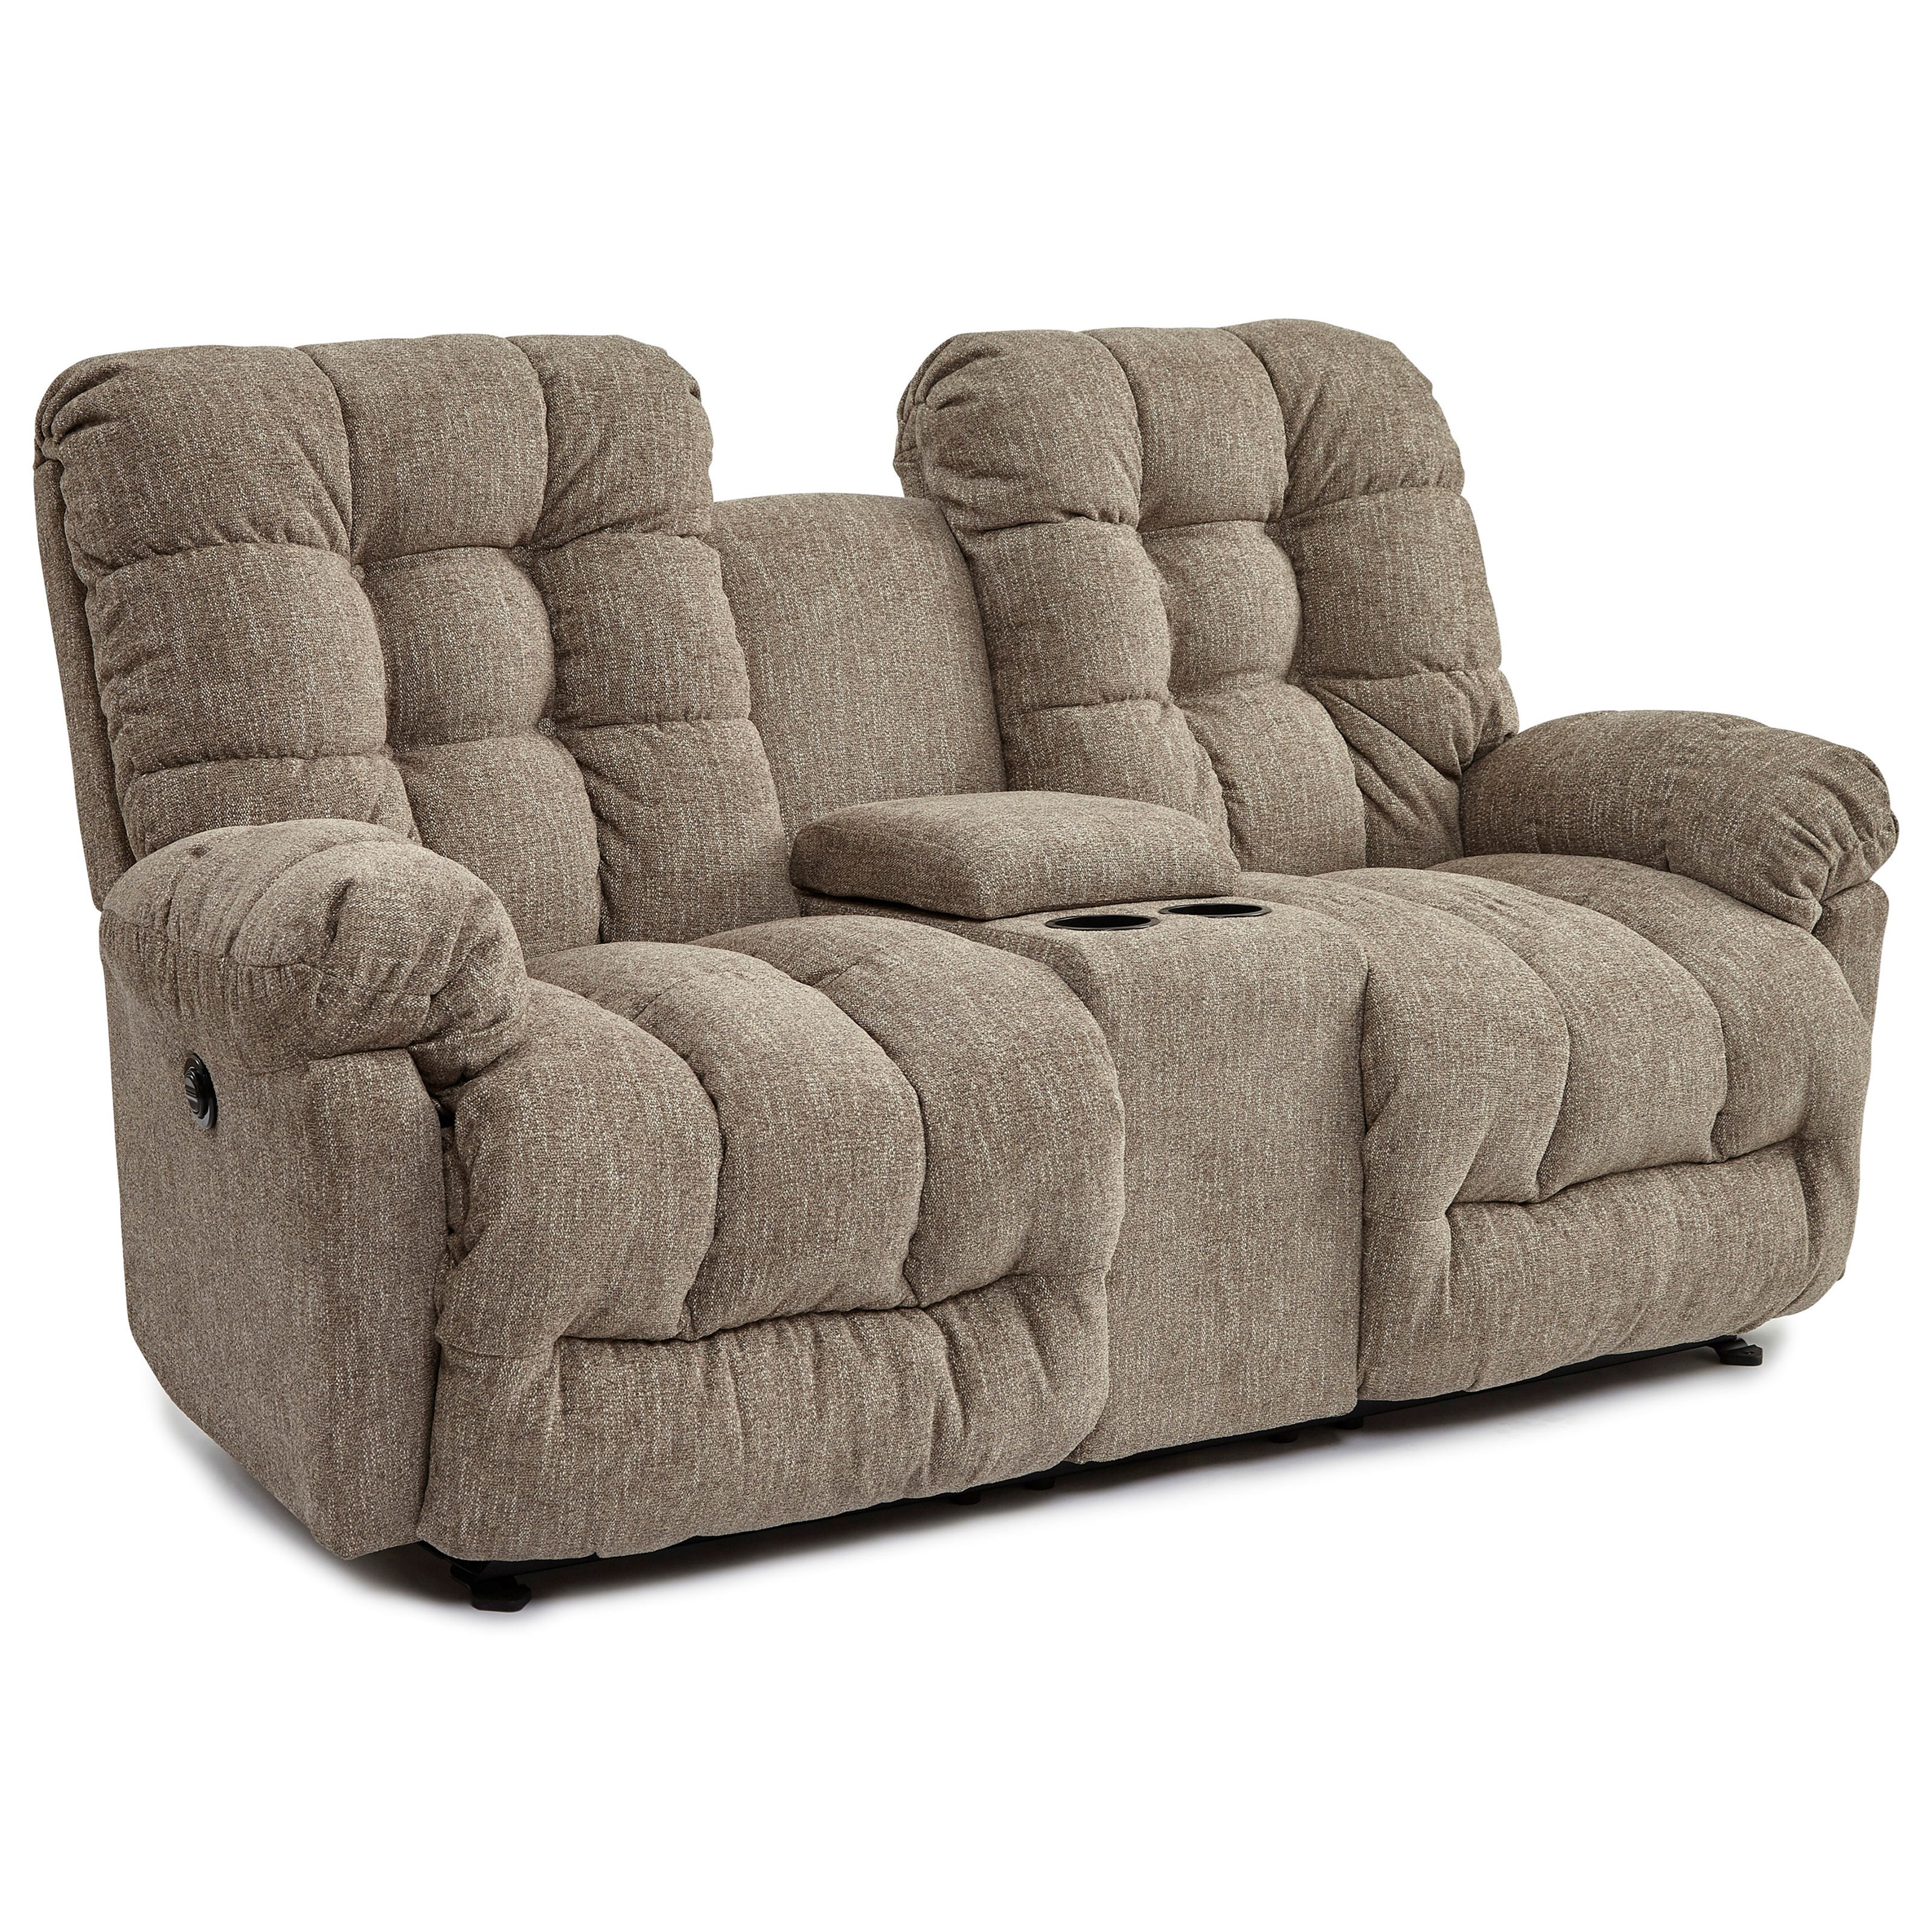 Fantastic Power Space Saver Reclining Loveseat With Storage Console By Beatyapartments Chair Design Images Beatyapartmentscom